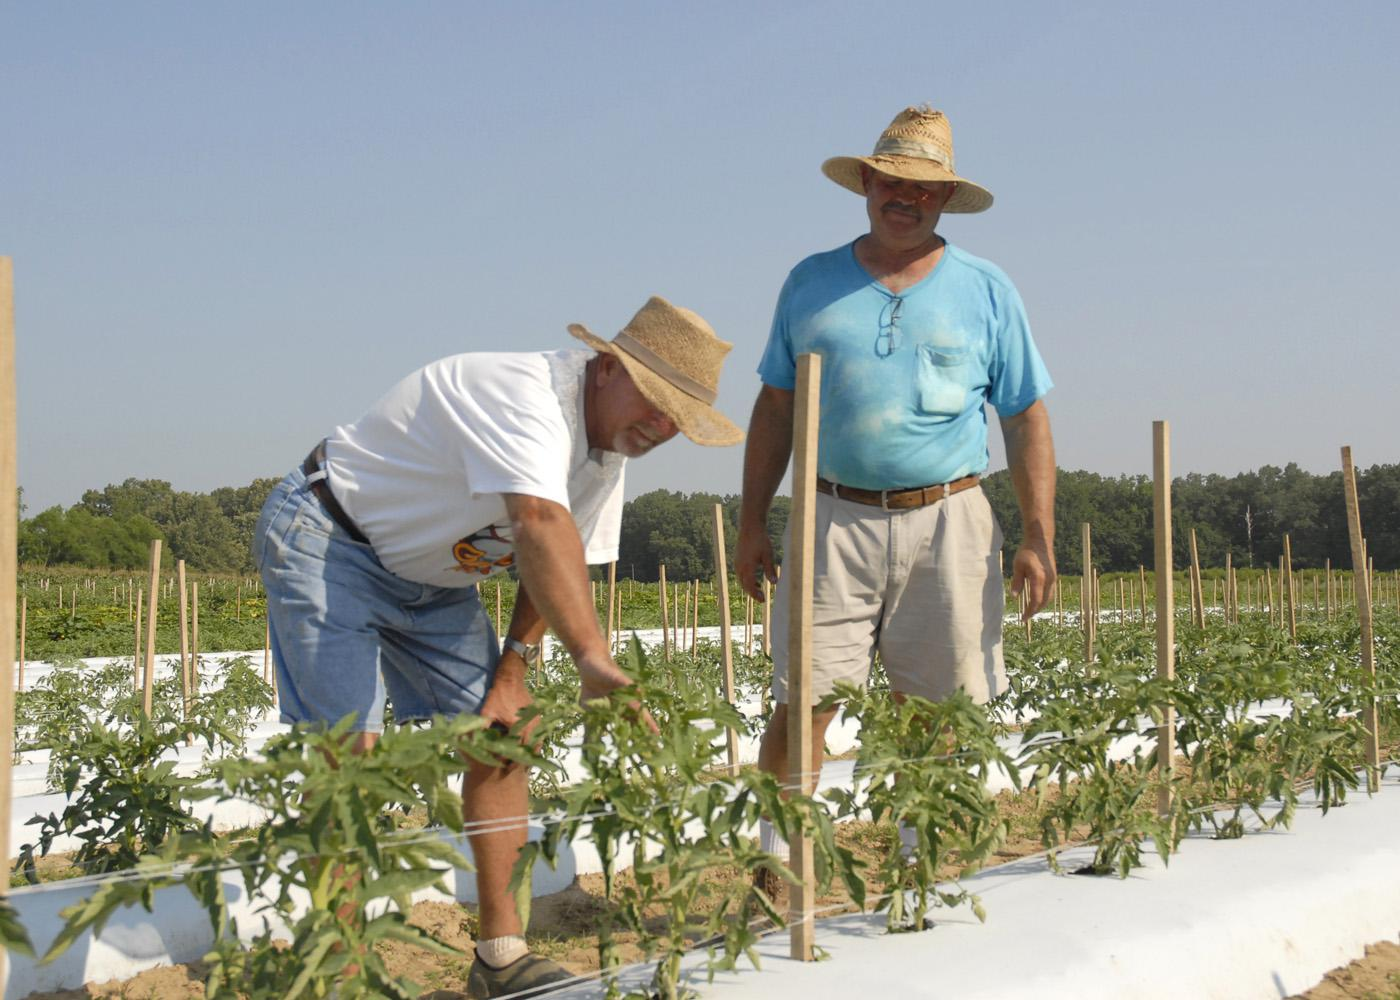 Doil Moore, left, gets a closer look at young tomatoes on Prospect Produce Farm in the Sonora Community, south of Houston. Moore and his business partner, James Earnest, have been selling locally grown fruits and vegetables since 2009.